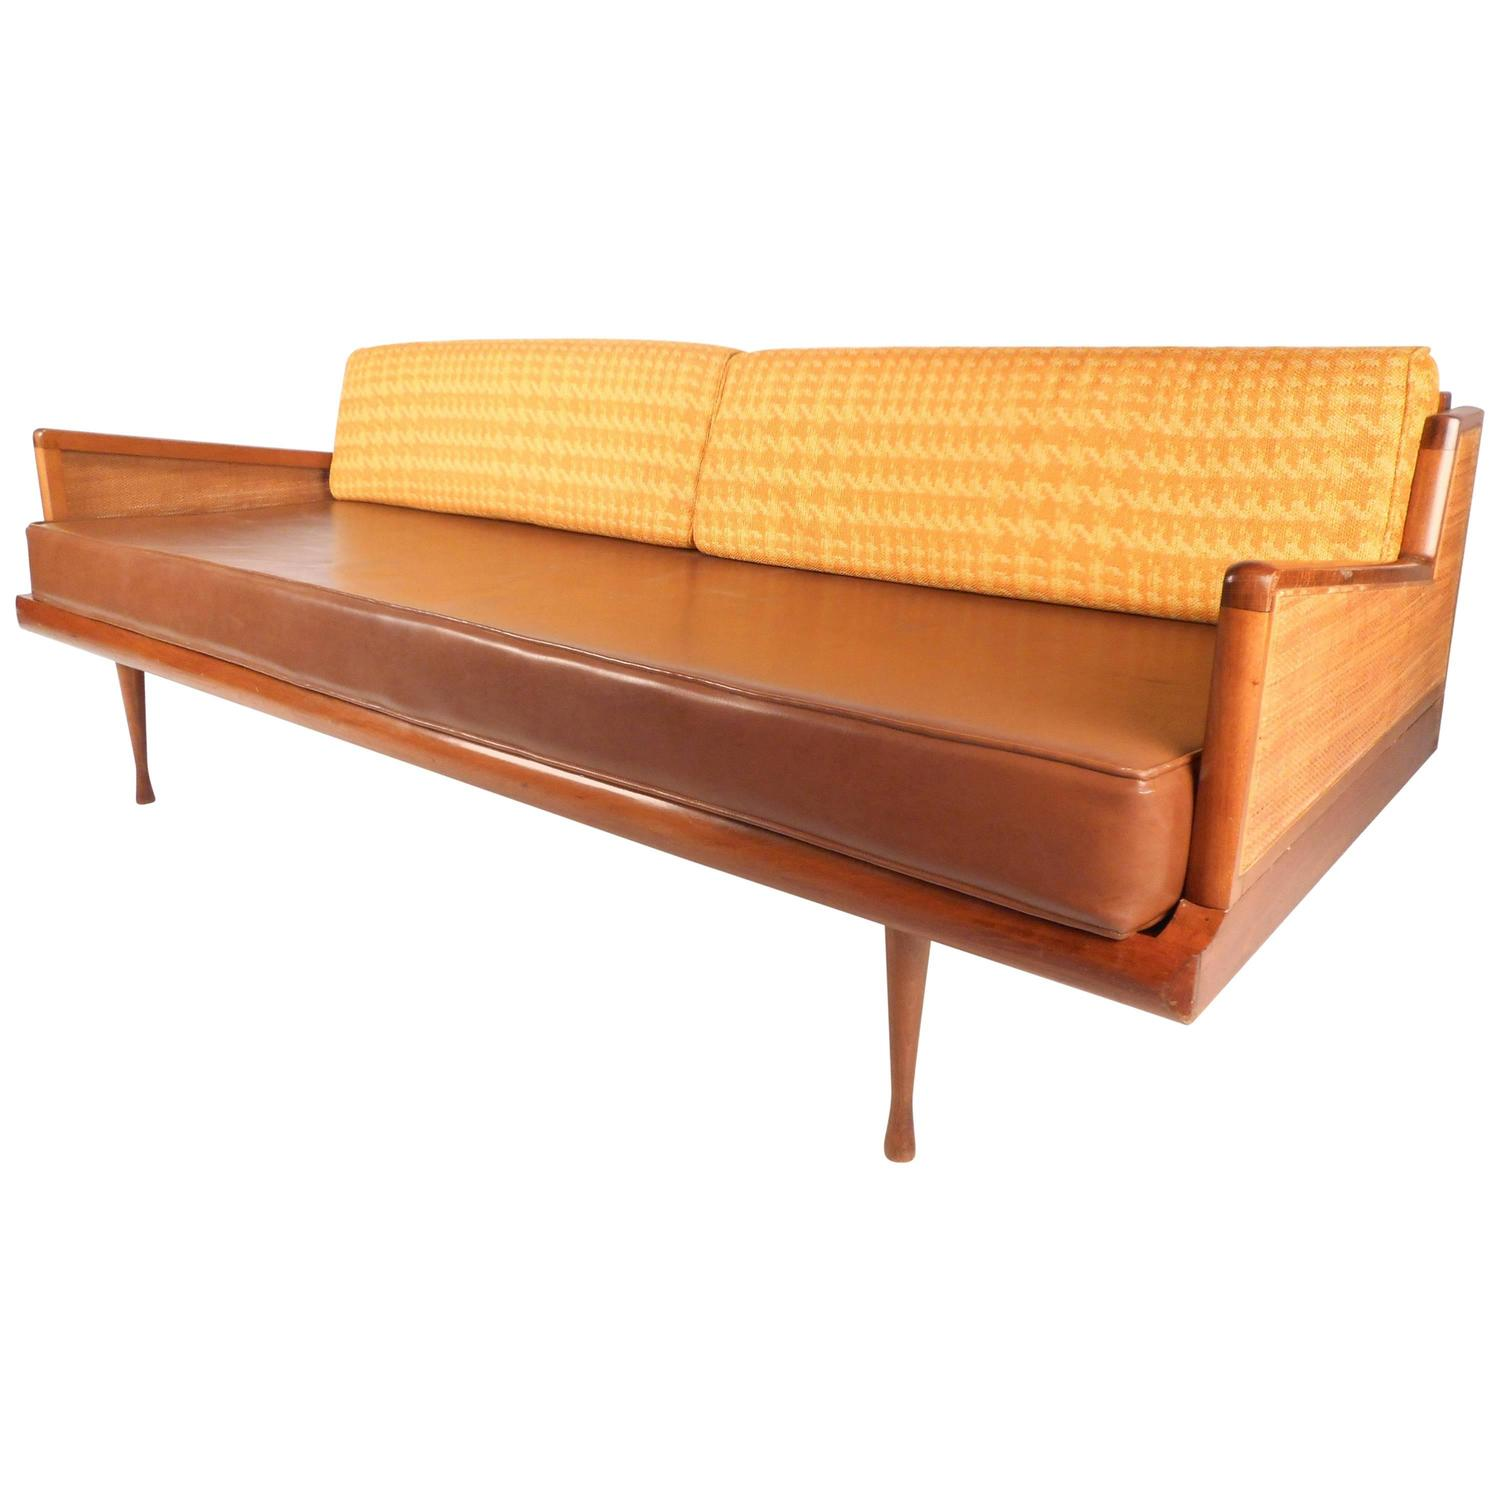 Used Cane Sofa For Sale In Bangalore: Mid-Century Modern Walnut And Cane Sofa For Sale At 1stdibs